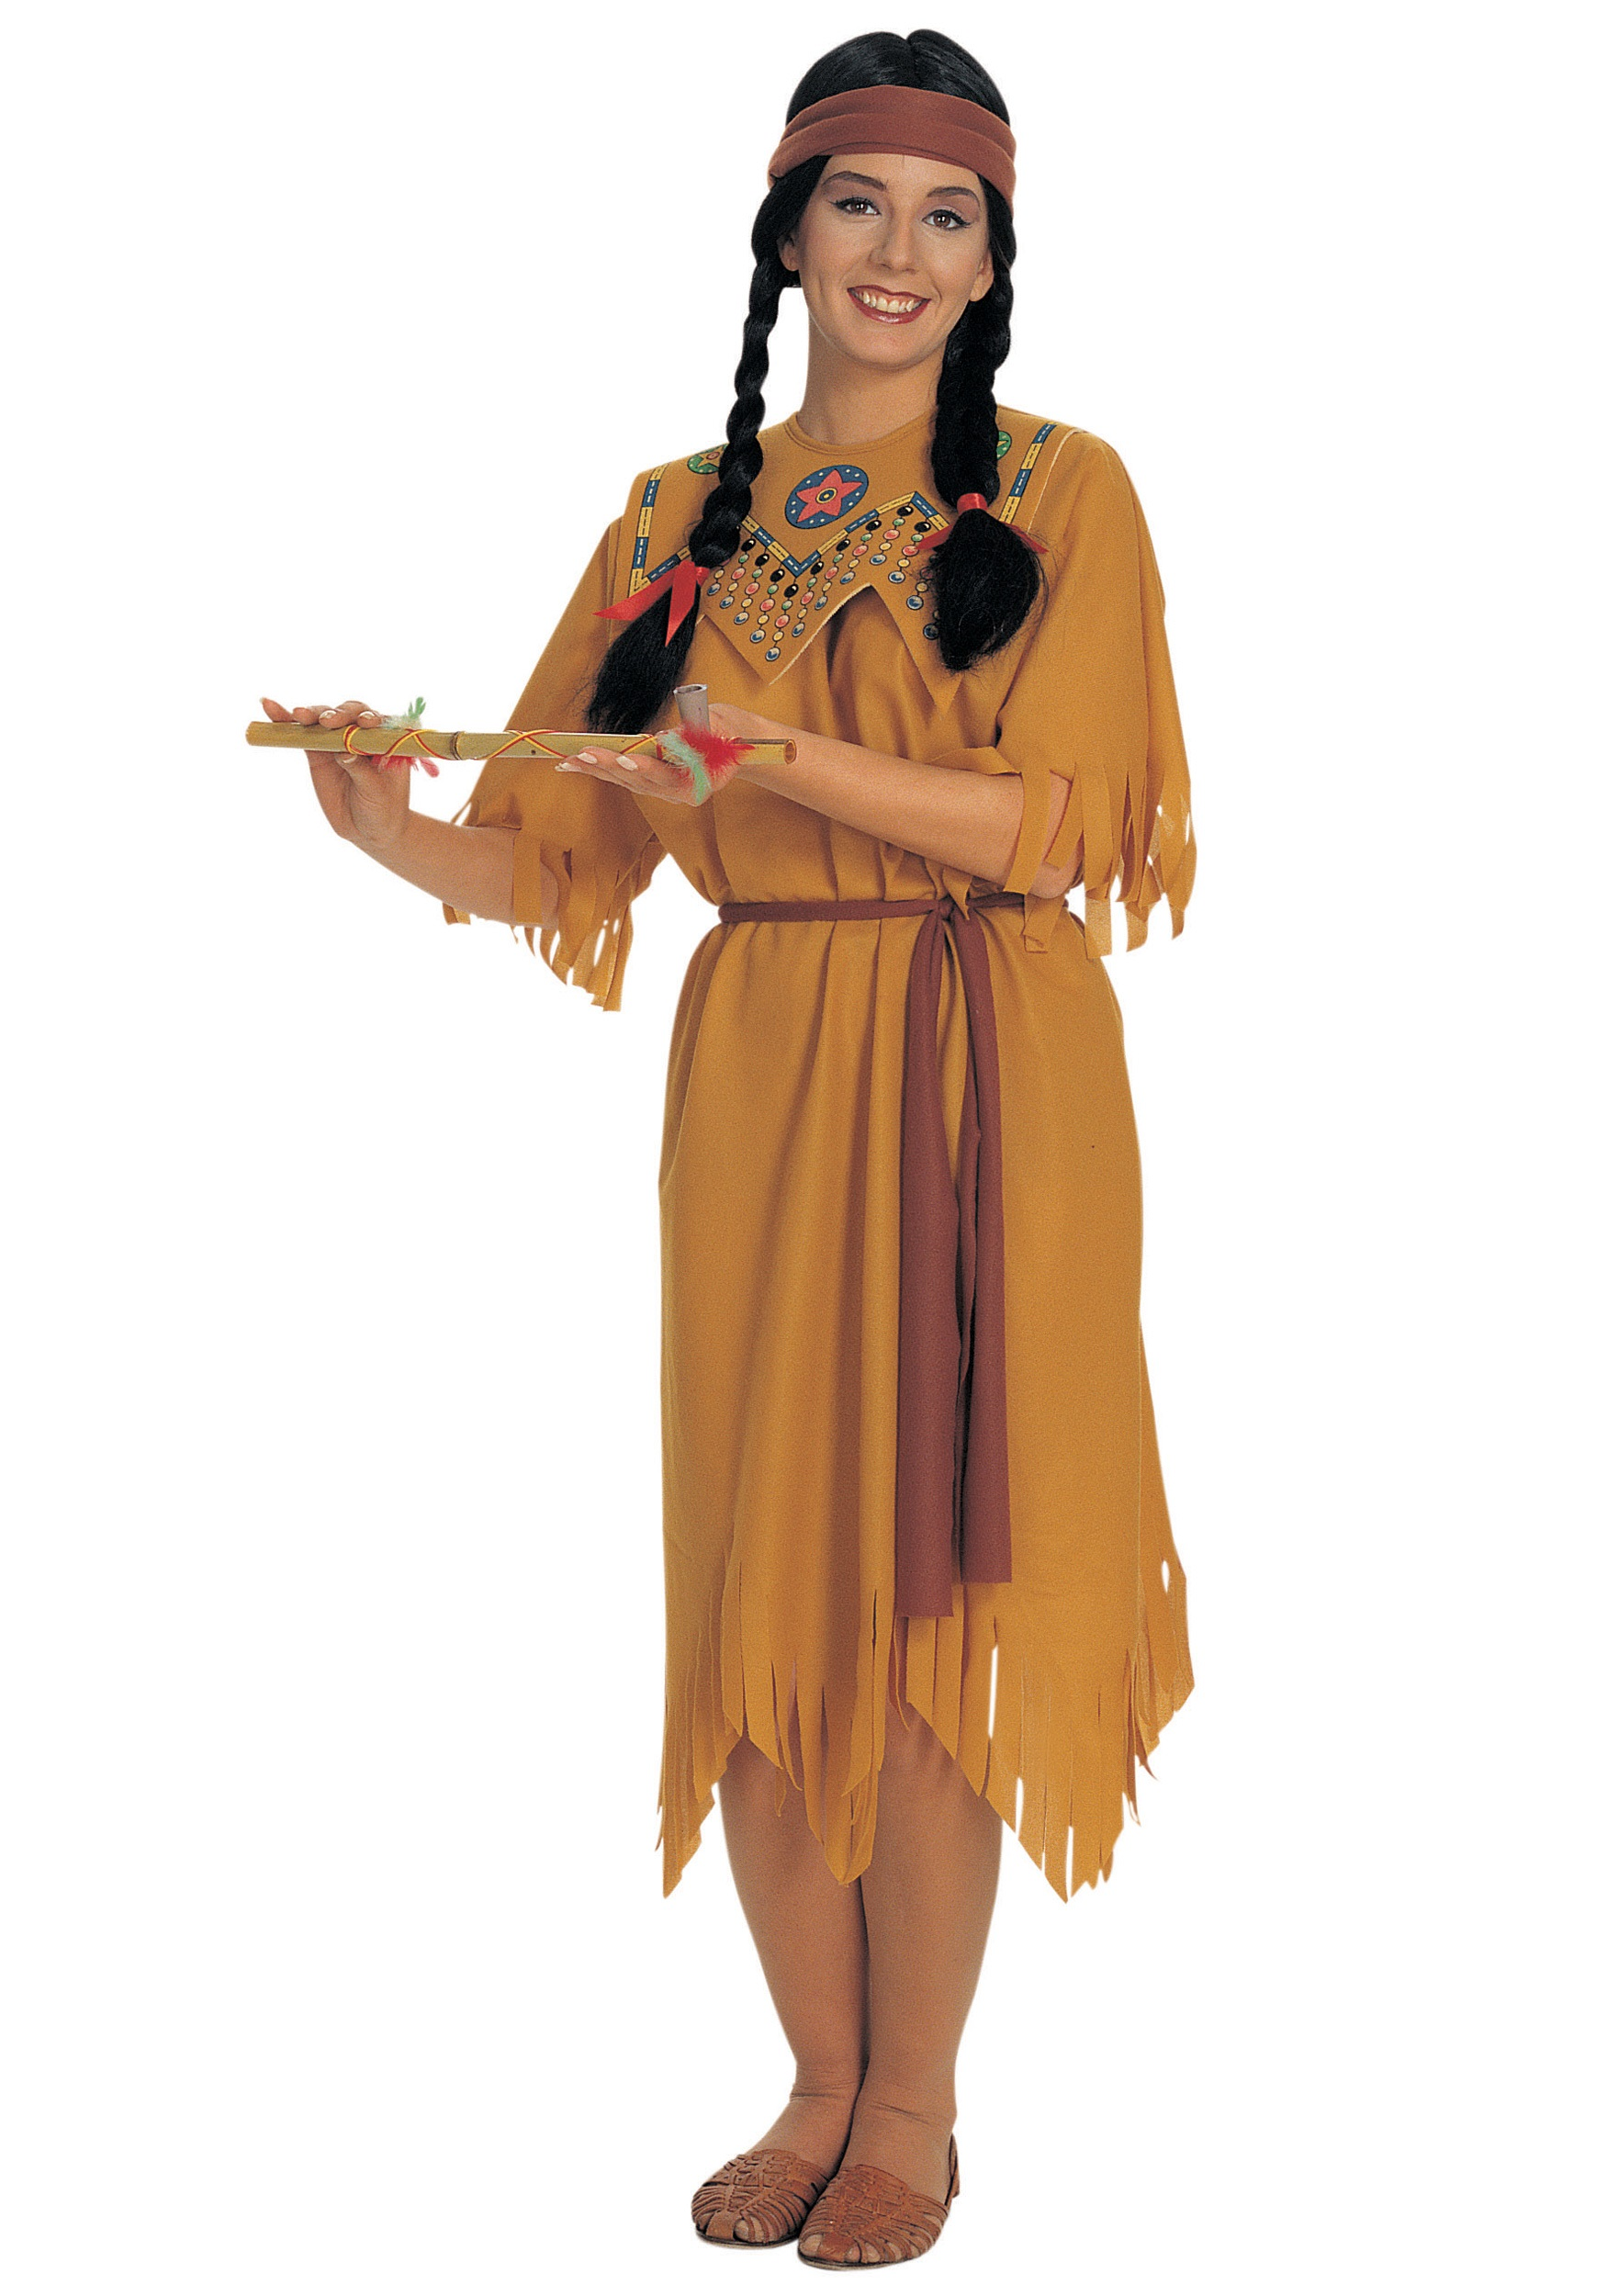 pocahontas costume. Black Bedroom Furniture Sets. Home Design Ideas